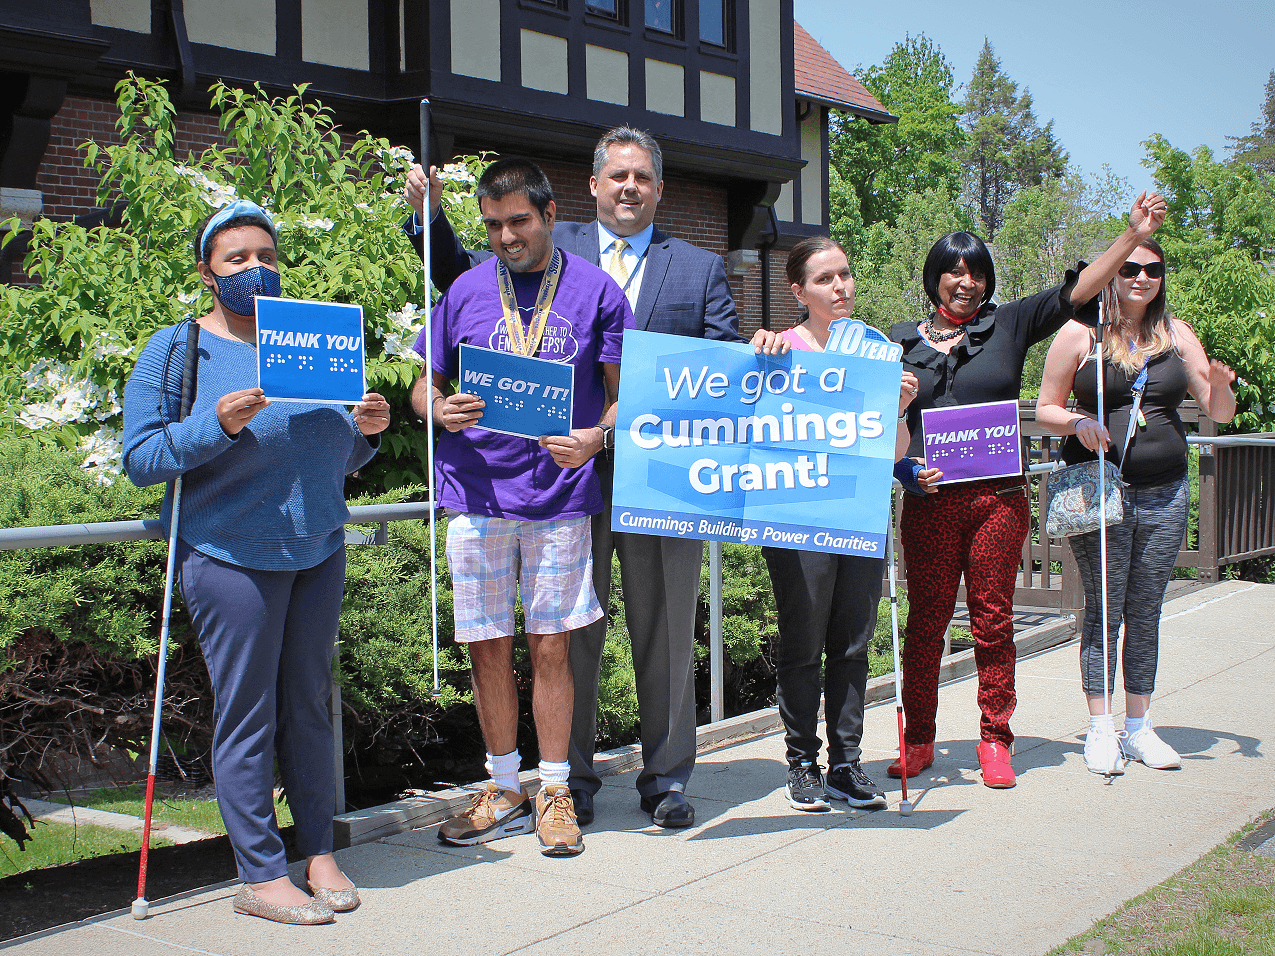 """Gregory J. Donnelly, President and CEO of the Carroll Center for the Blind, celebrates the Cummings Foundation Grant by holding up signs with five Carroll Center clients outdoors. The signs read, """"We Got a Cummings Grant!"""""""